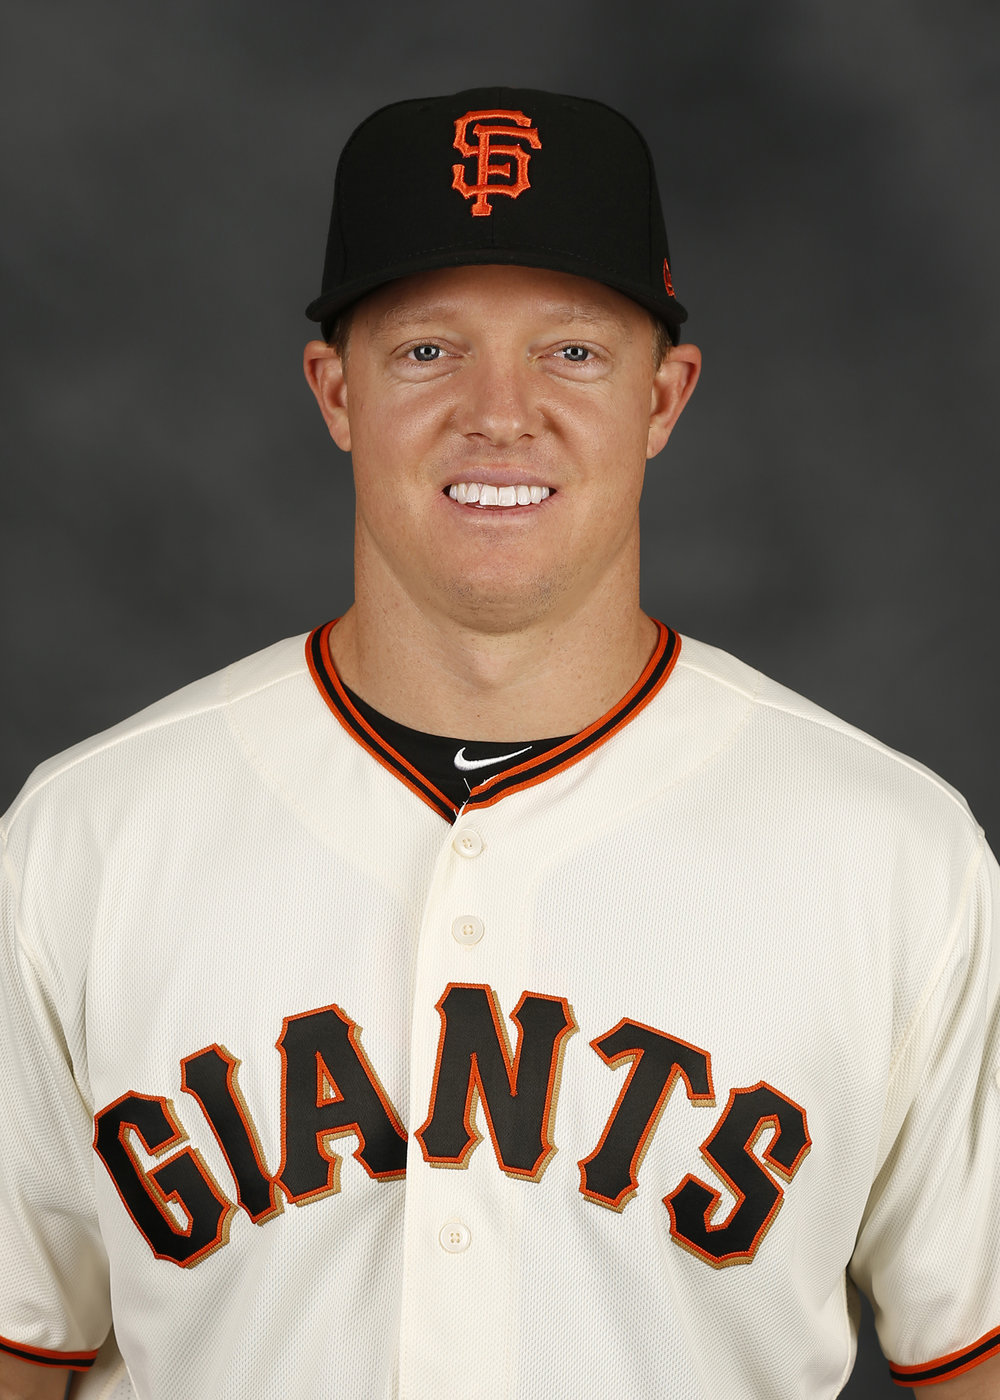 Nick Hundley   Nick Hundley enters his second season with the San Francisco Giants.  He was the 2017 Willie Mac Award winner in his first year with the club, hit .244 with nine home runs and 35 RBIs in 101 games as the team's backup catcher. Nearly half of Hundley's hits — 32 of 70 — went for extra bases last season.